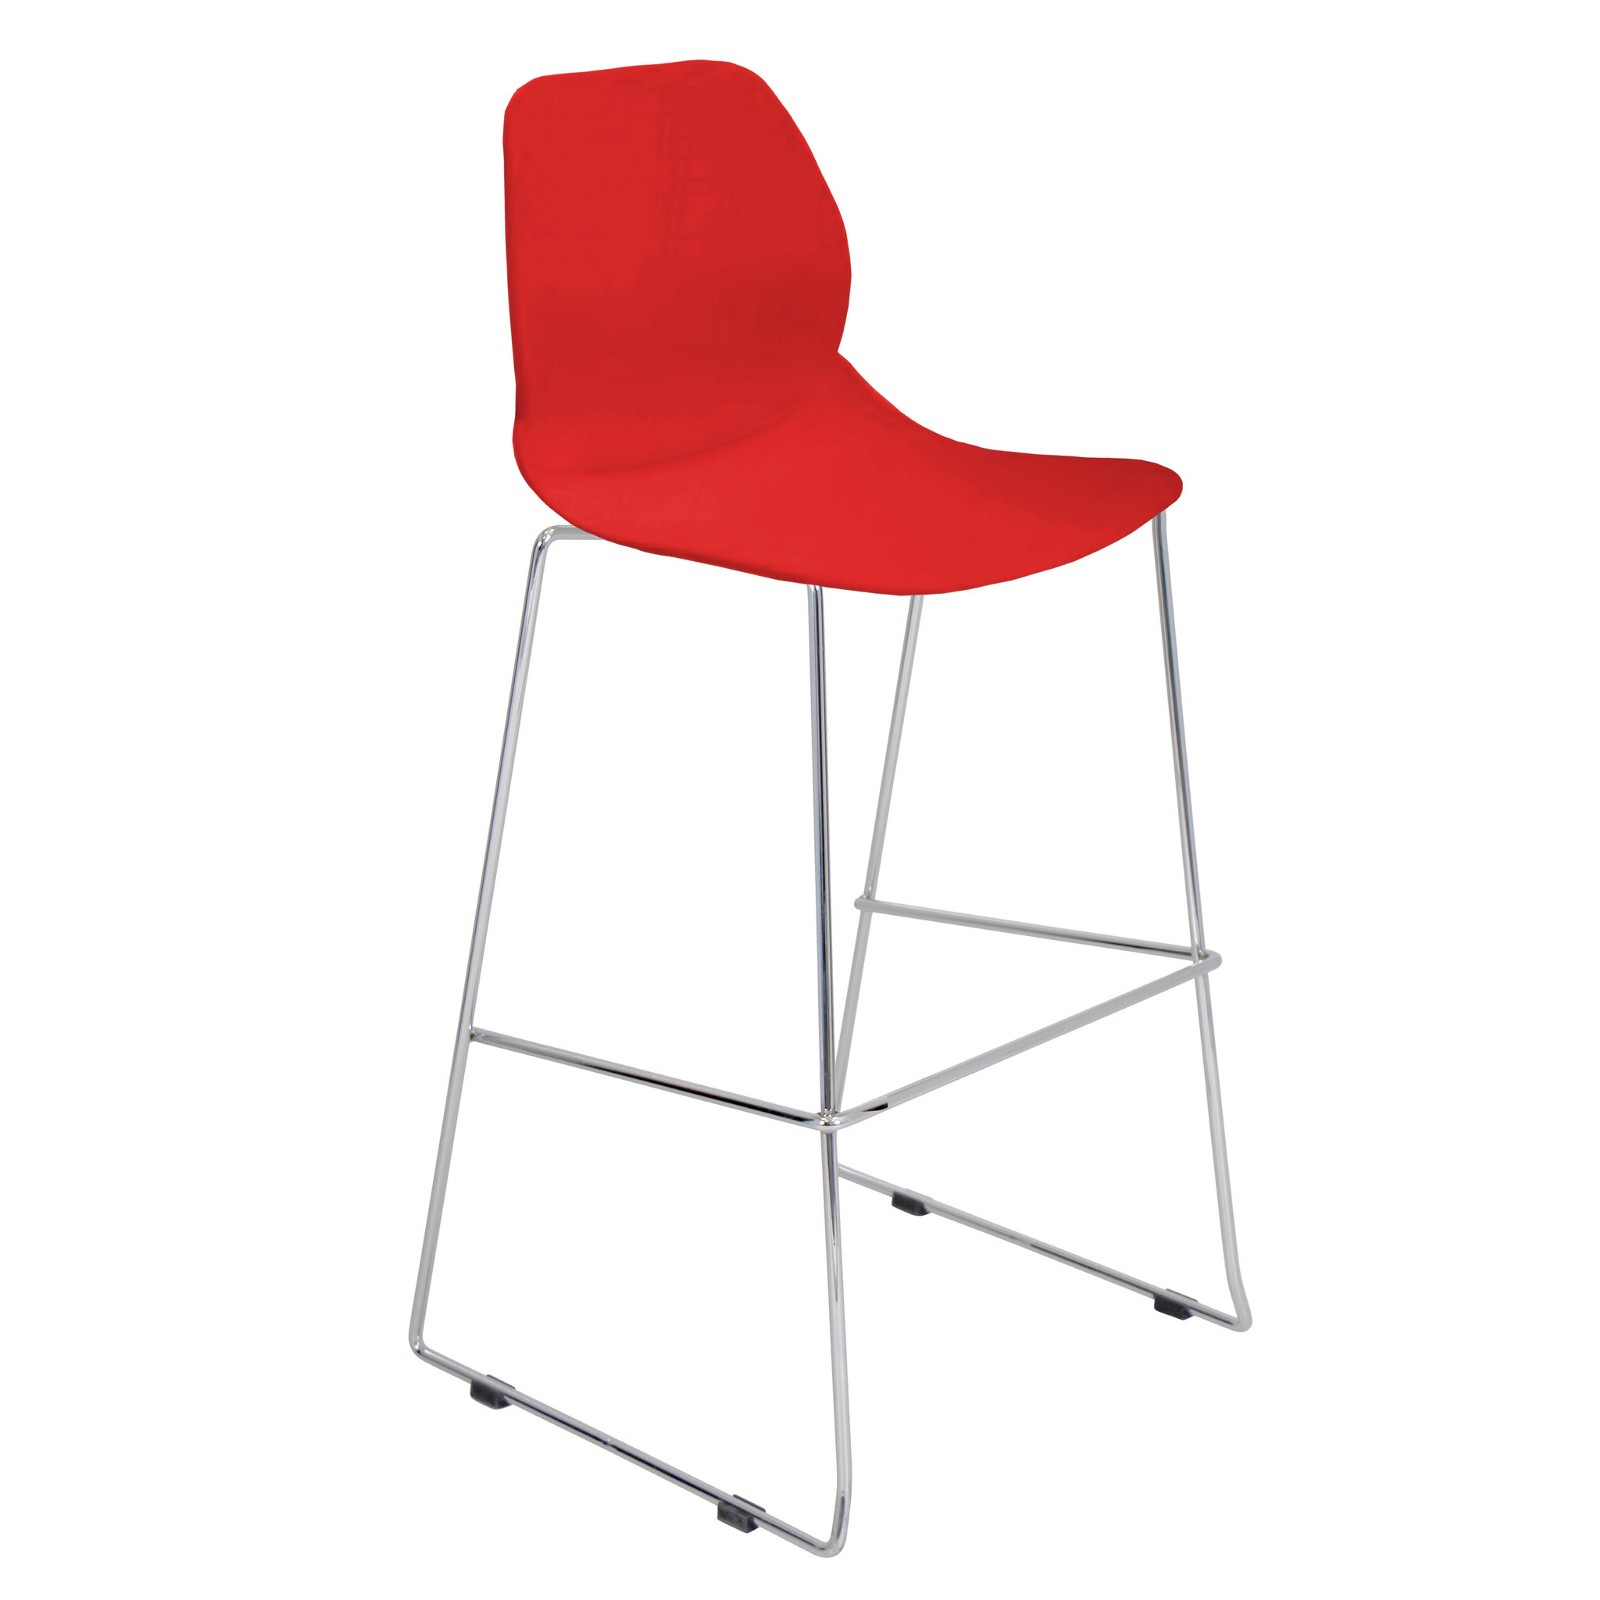 Droplet Bar Stool Stacker Red: Droplet Bar Stool Stacker Red Enhances The  Style And Modernity Of Your Counter Or Bar Area. This Chic Ice Cream Parlor  Stool ...